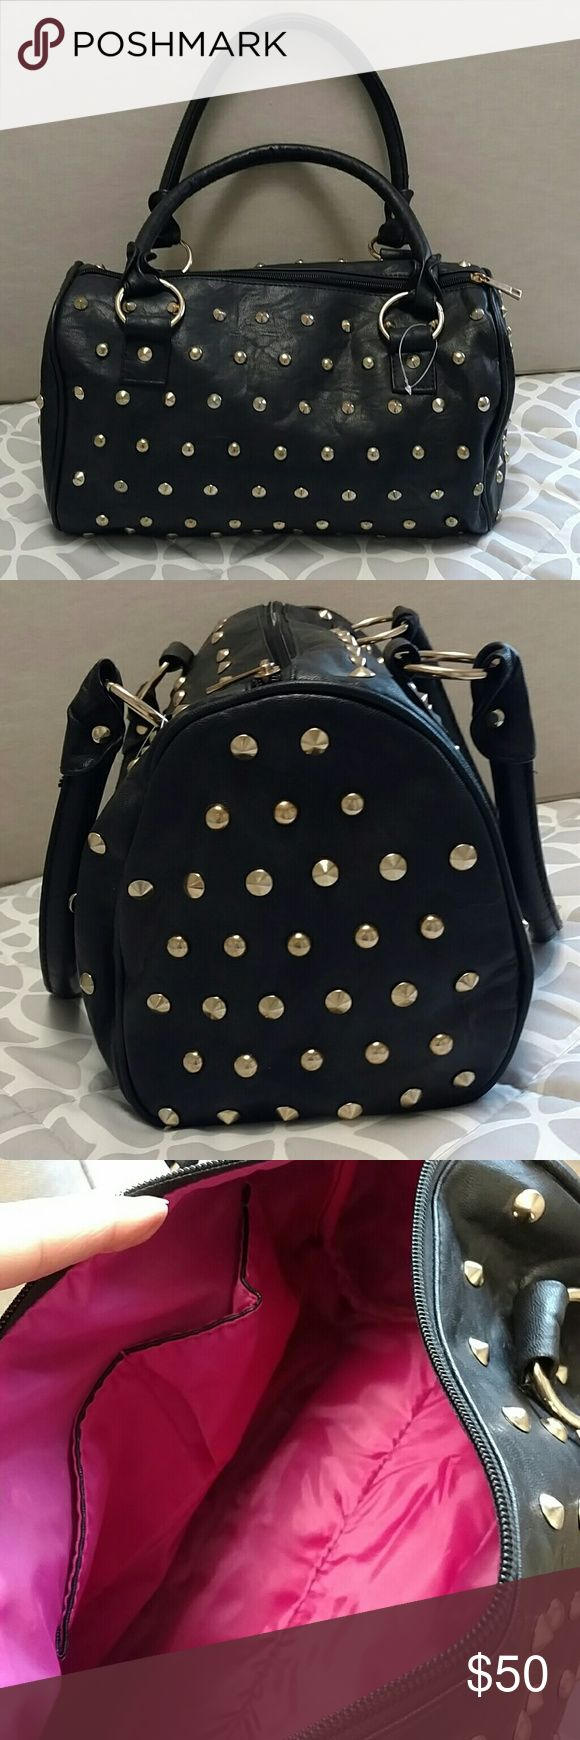 ✨Gold Studded Duffle Satchel Bag Purse NEW! Gold Studded Duffle Satchel Bag Purse NEW!  Super trendy & ready for this season!  Vegan faux type leather.  Size 13x7x7.5 ~ Hot pink interior with 2 open pockets & 1 zipper pocket.  Last 3 pix are ideas only.  Slight tarnish on one side of zipper (see pic #5).  Very minor but I like to point out anything I can!  Brand New!  New but no tags.  Has plastic tag hanger still though. Bags Satchels